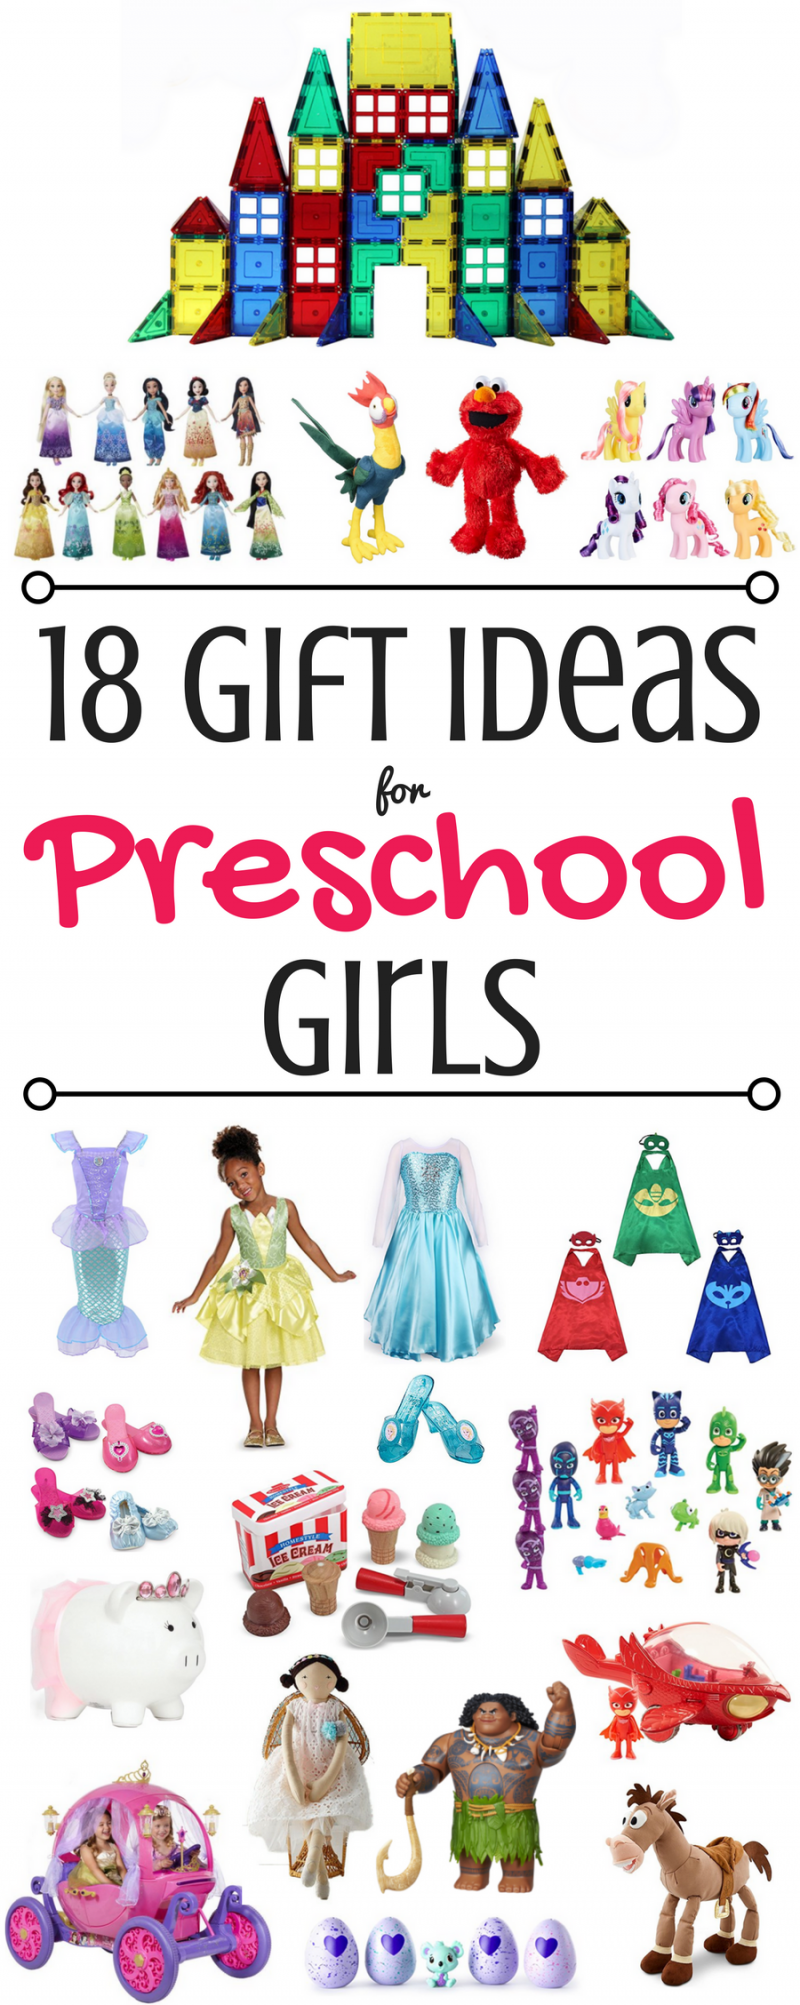 18 GIFT IDEAS FOR PRESCHOOL GIRLS